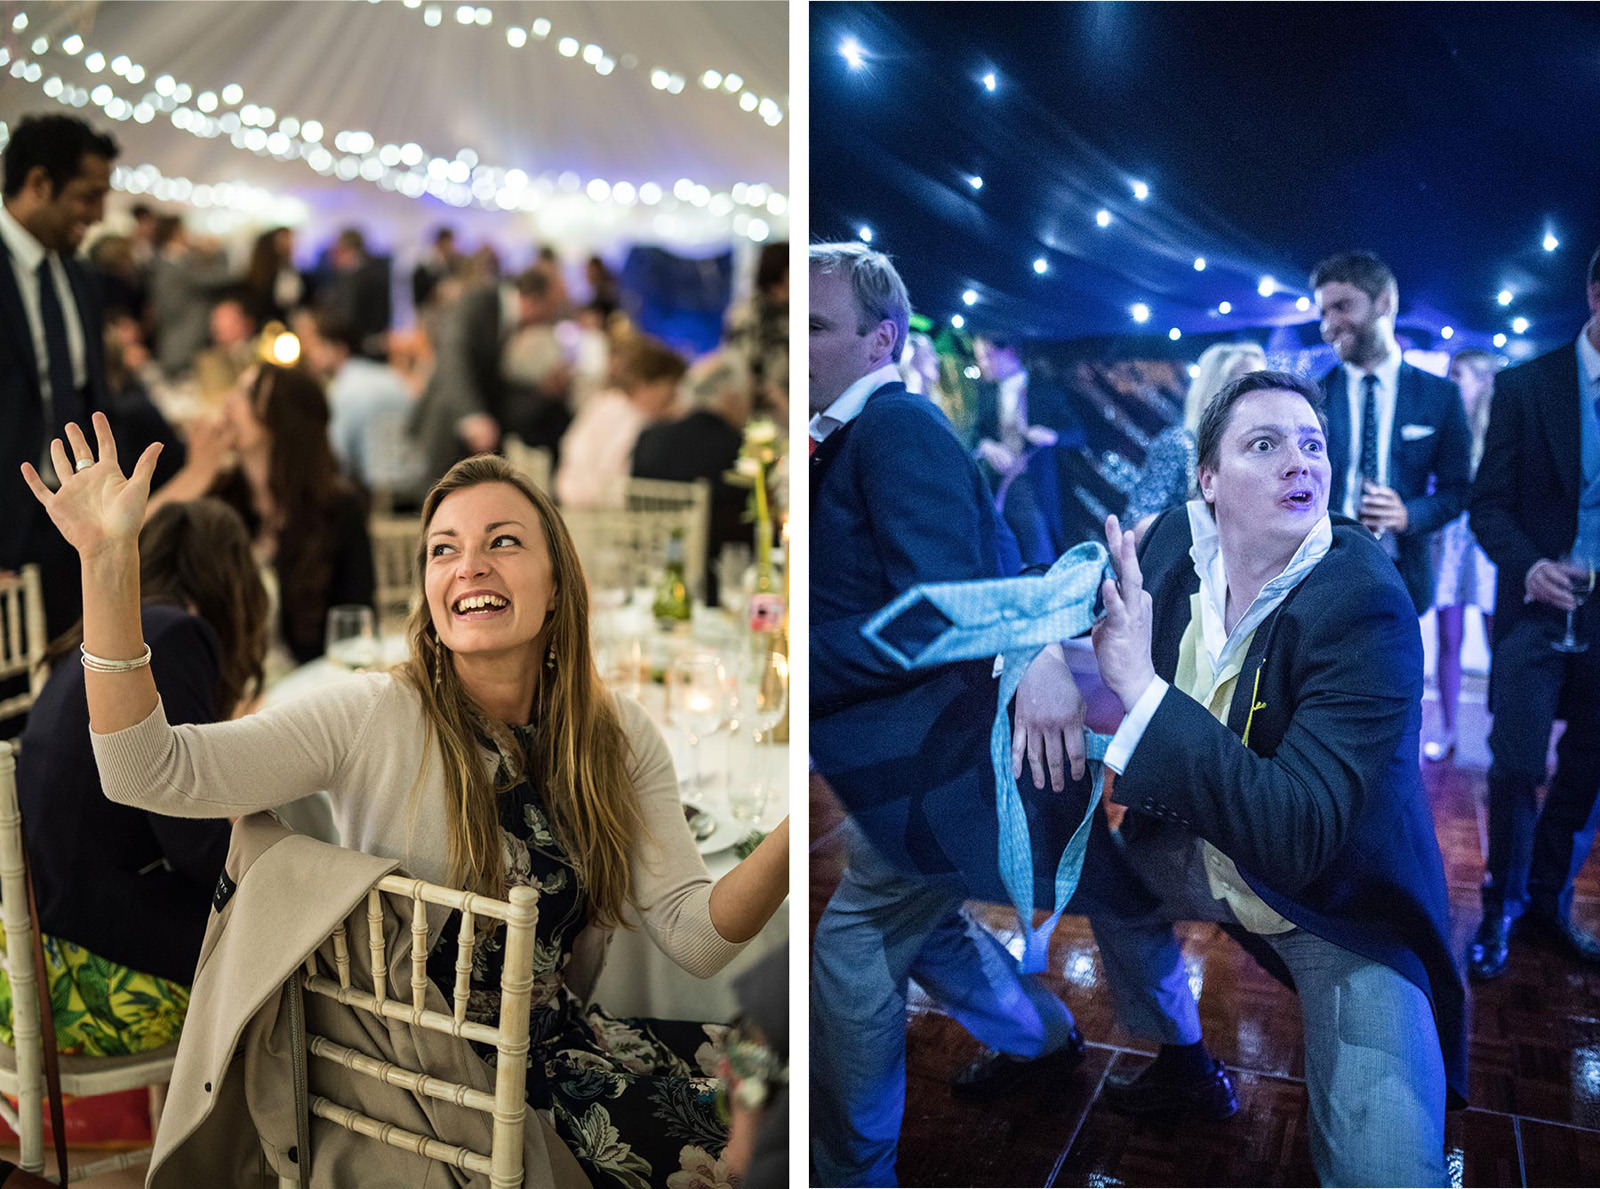 Dancing under a starry ceiling marquee